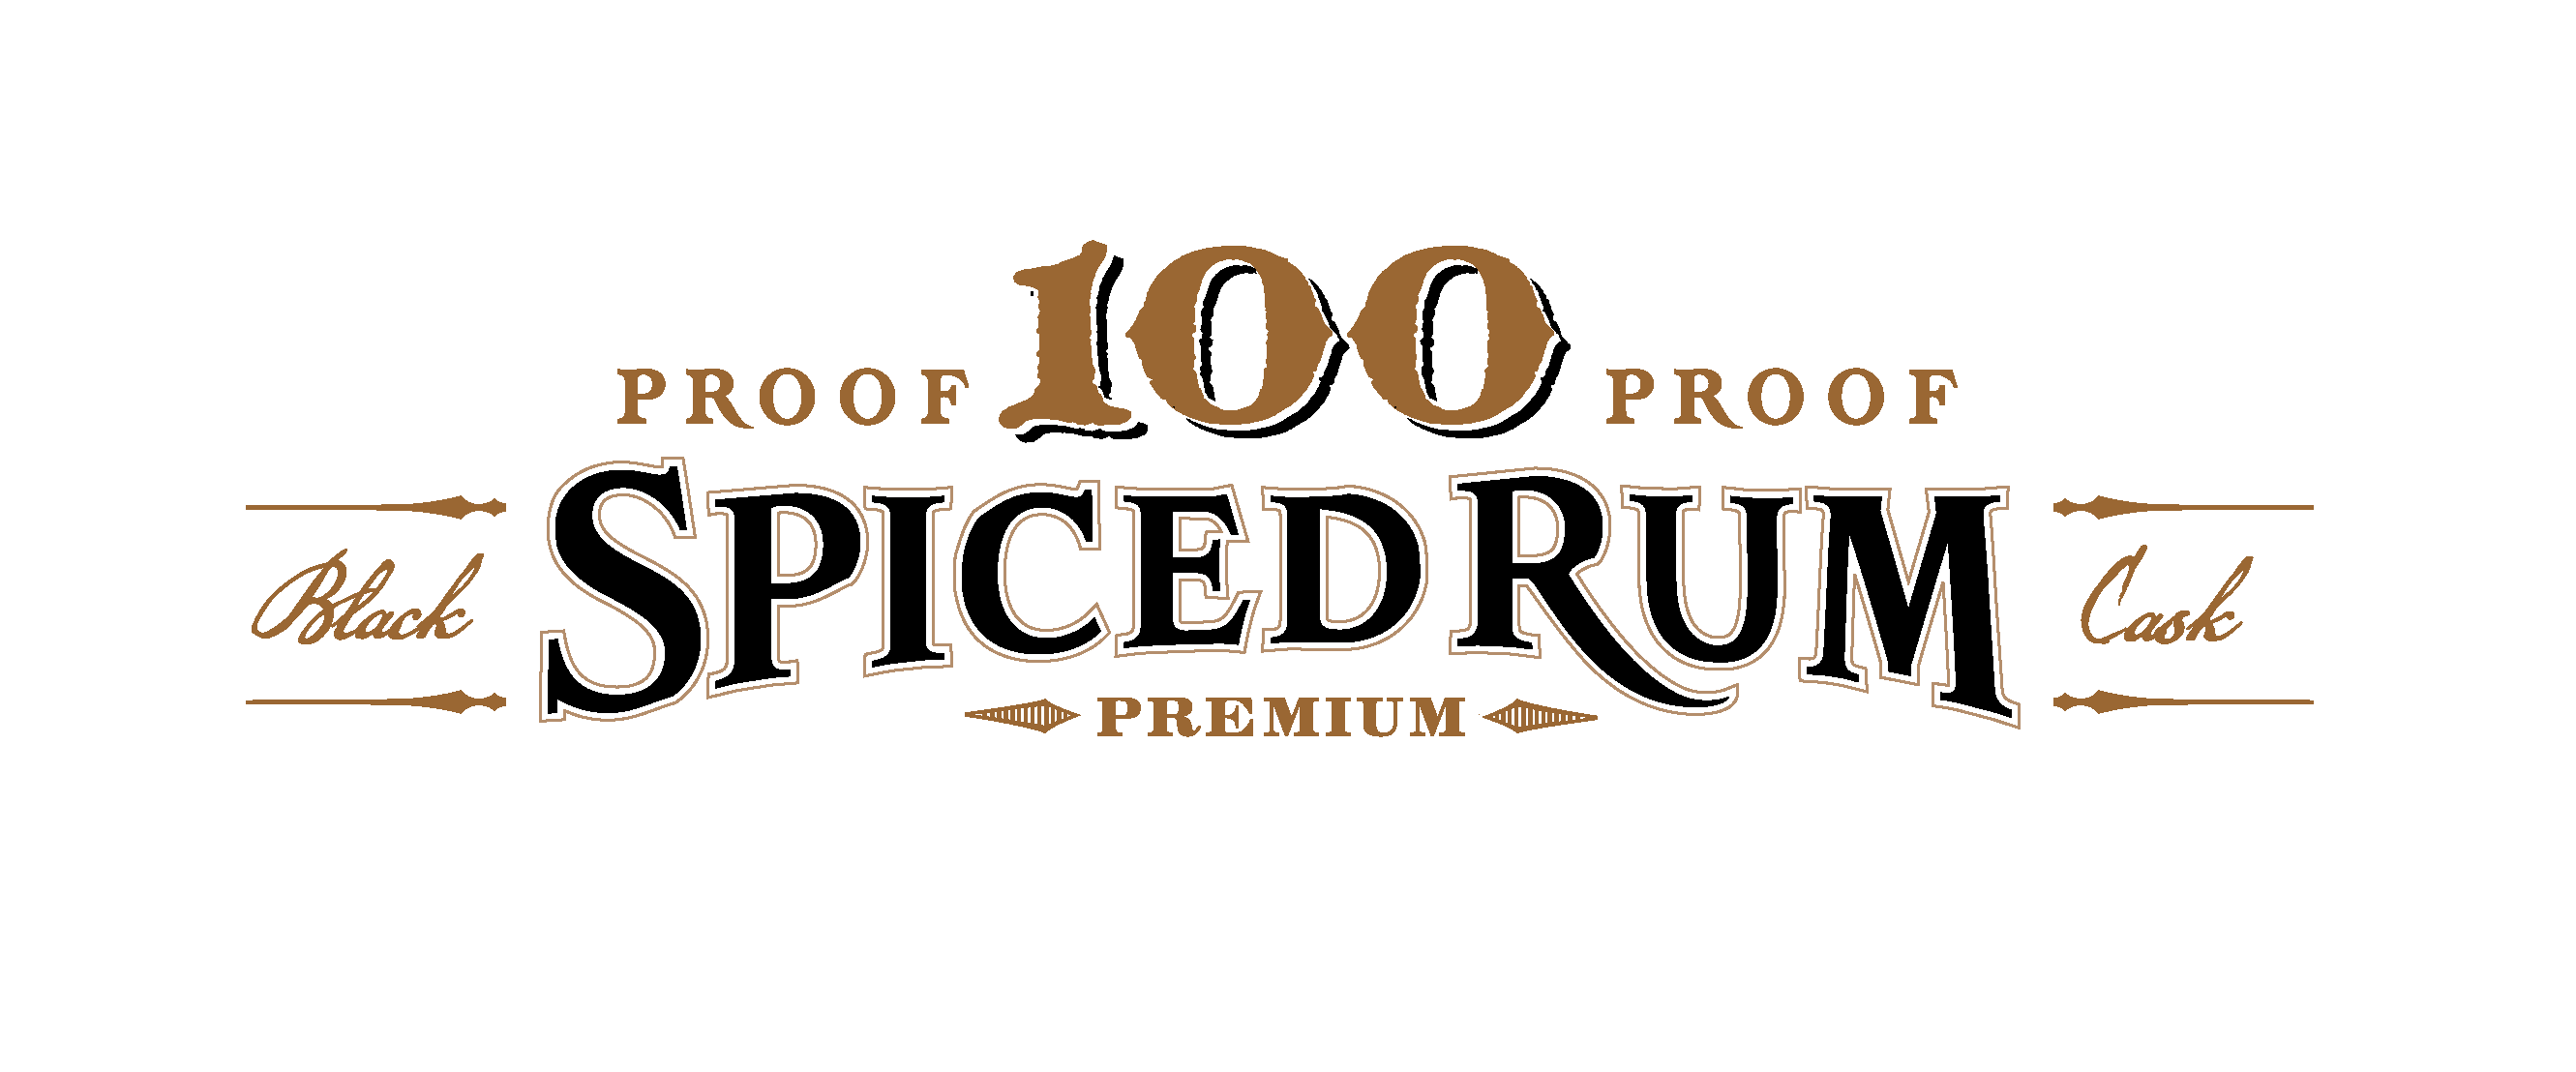 Captain Morgan 100 Proof Spiced Rum typography design